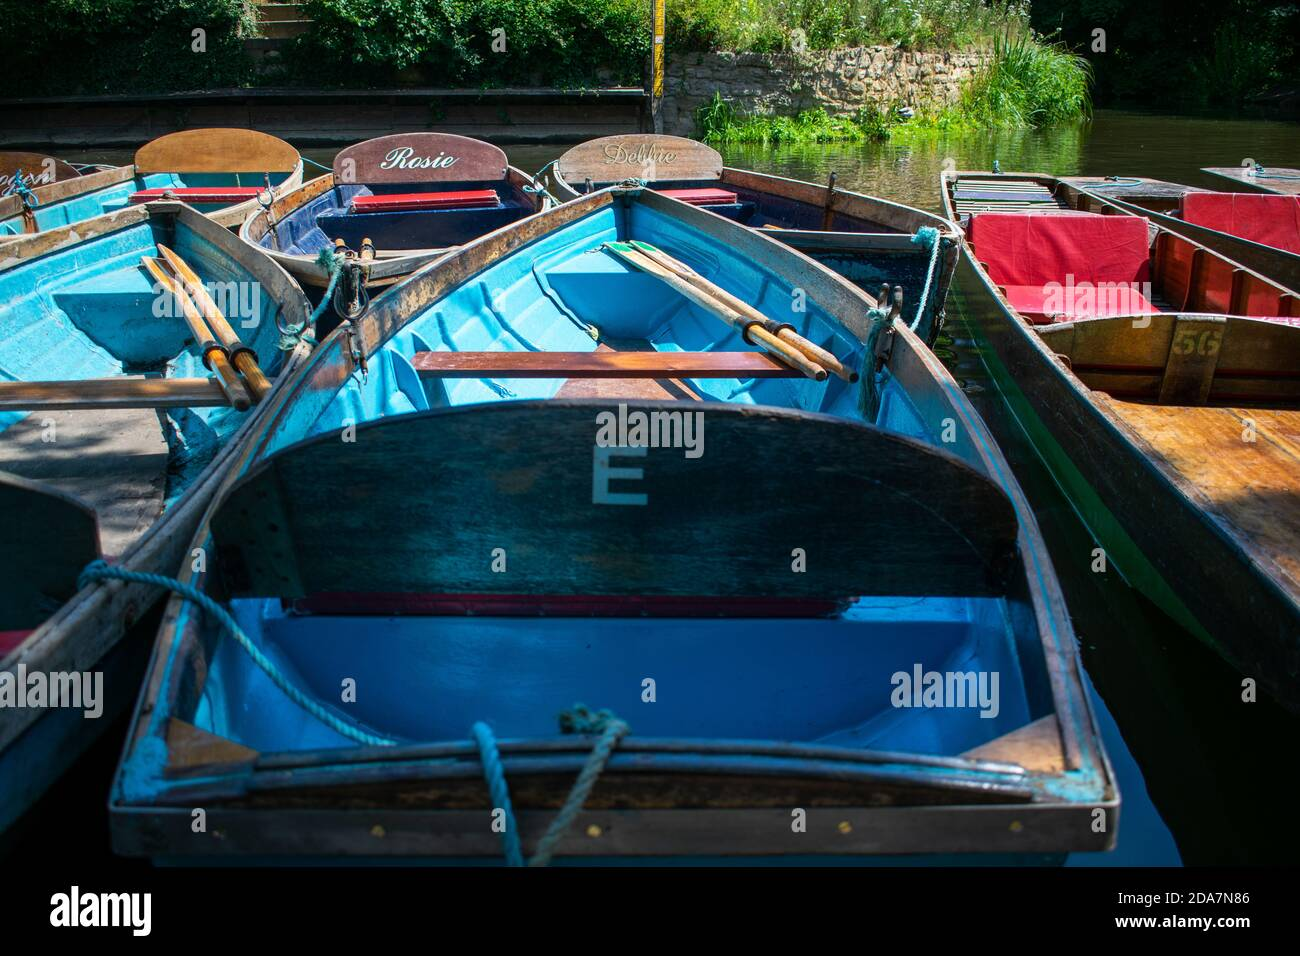 Oxford, UK 23/06/20: Punting boats by Magdalen Bridge Boathouse on river Cherwell in Oxford, many boats docked together in rows. Bright and colorfull Stock Photo